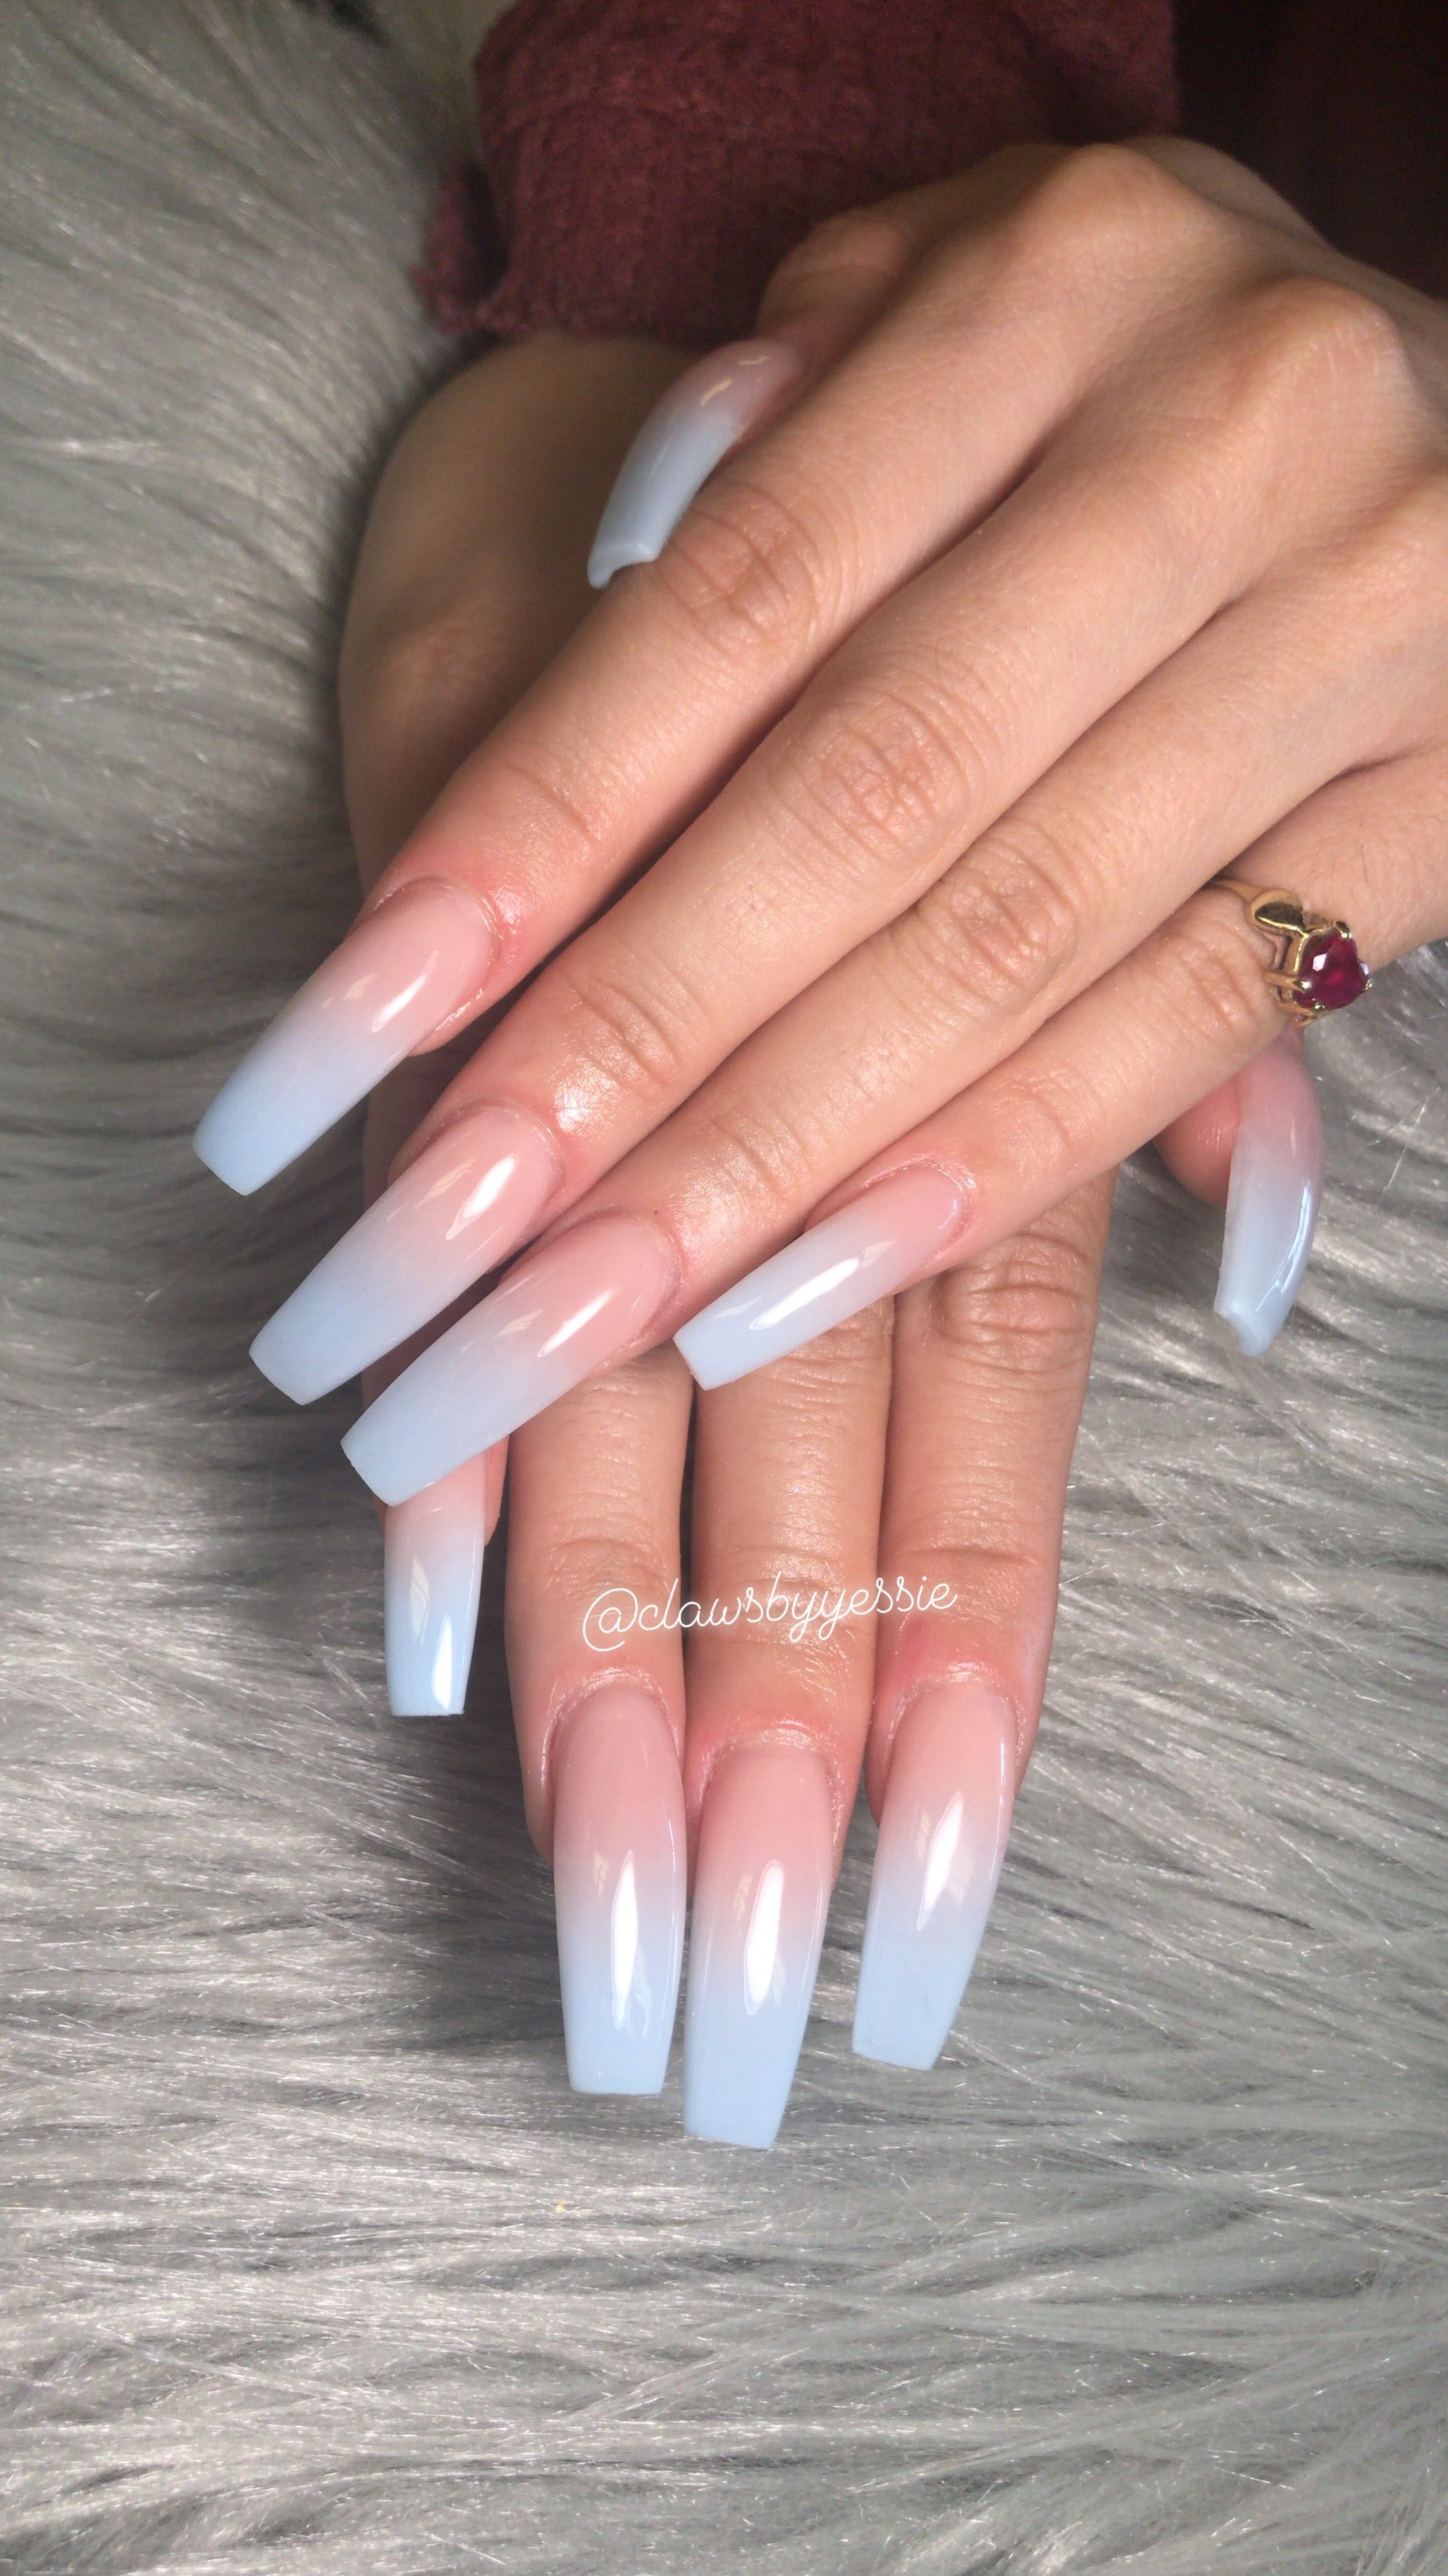 Pinterest Kiwihall15 Ig Trendyyslut Follow Me For More Bomb Pins Like This Nails Curved Nails Clear Acrylic Nails Long Acrylic Nails